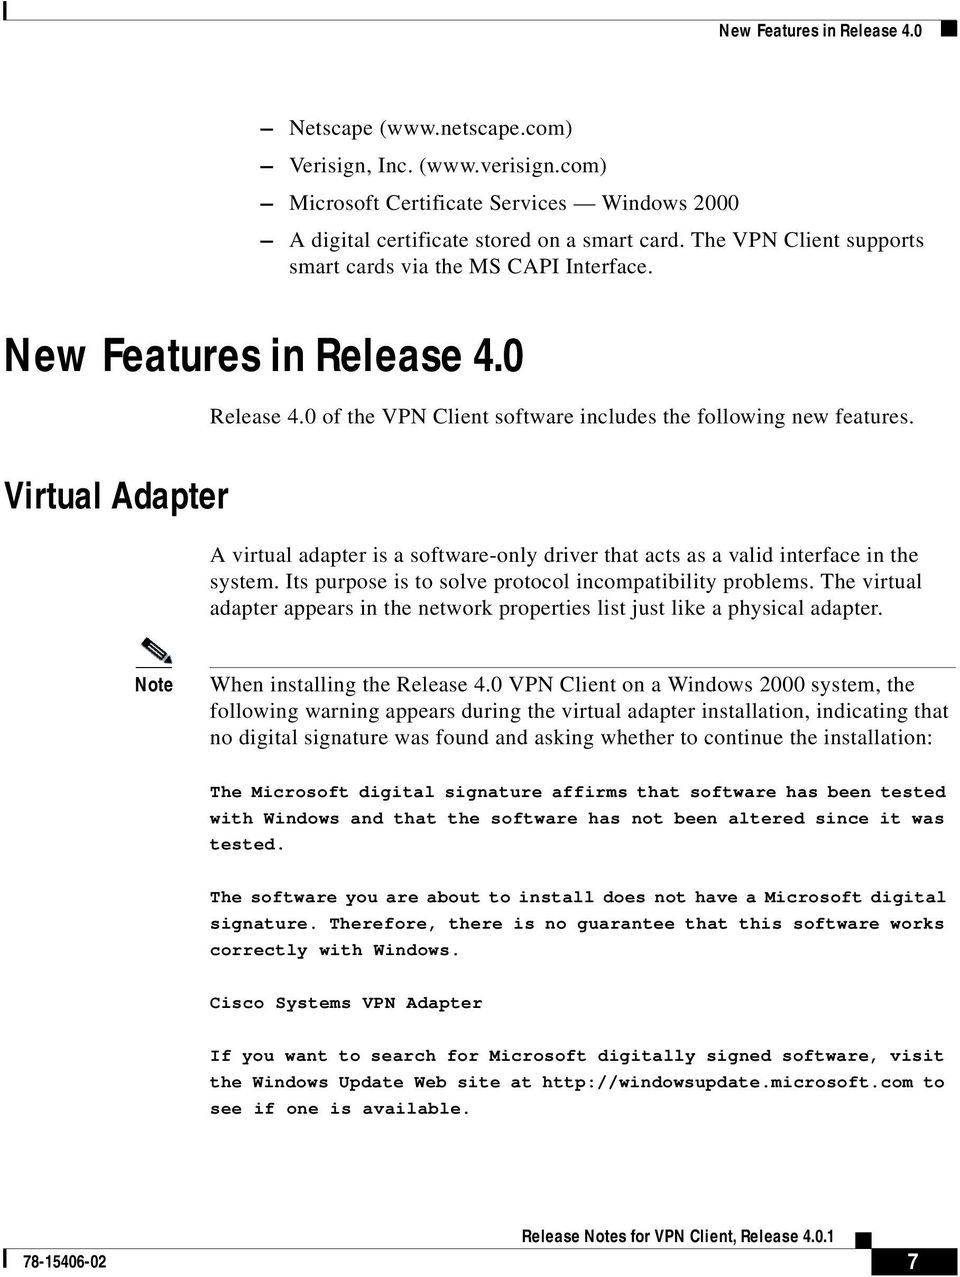 Virtual Adapter A virtual adapter is a software-only driver that acts as a valid interface in the system. Its purpose is to solve protocol incompatibility problems.